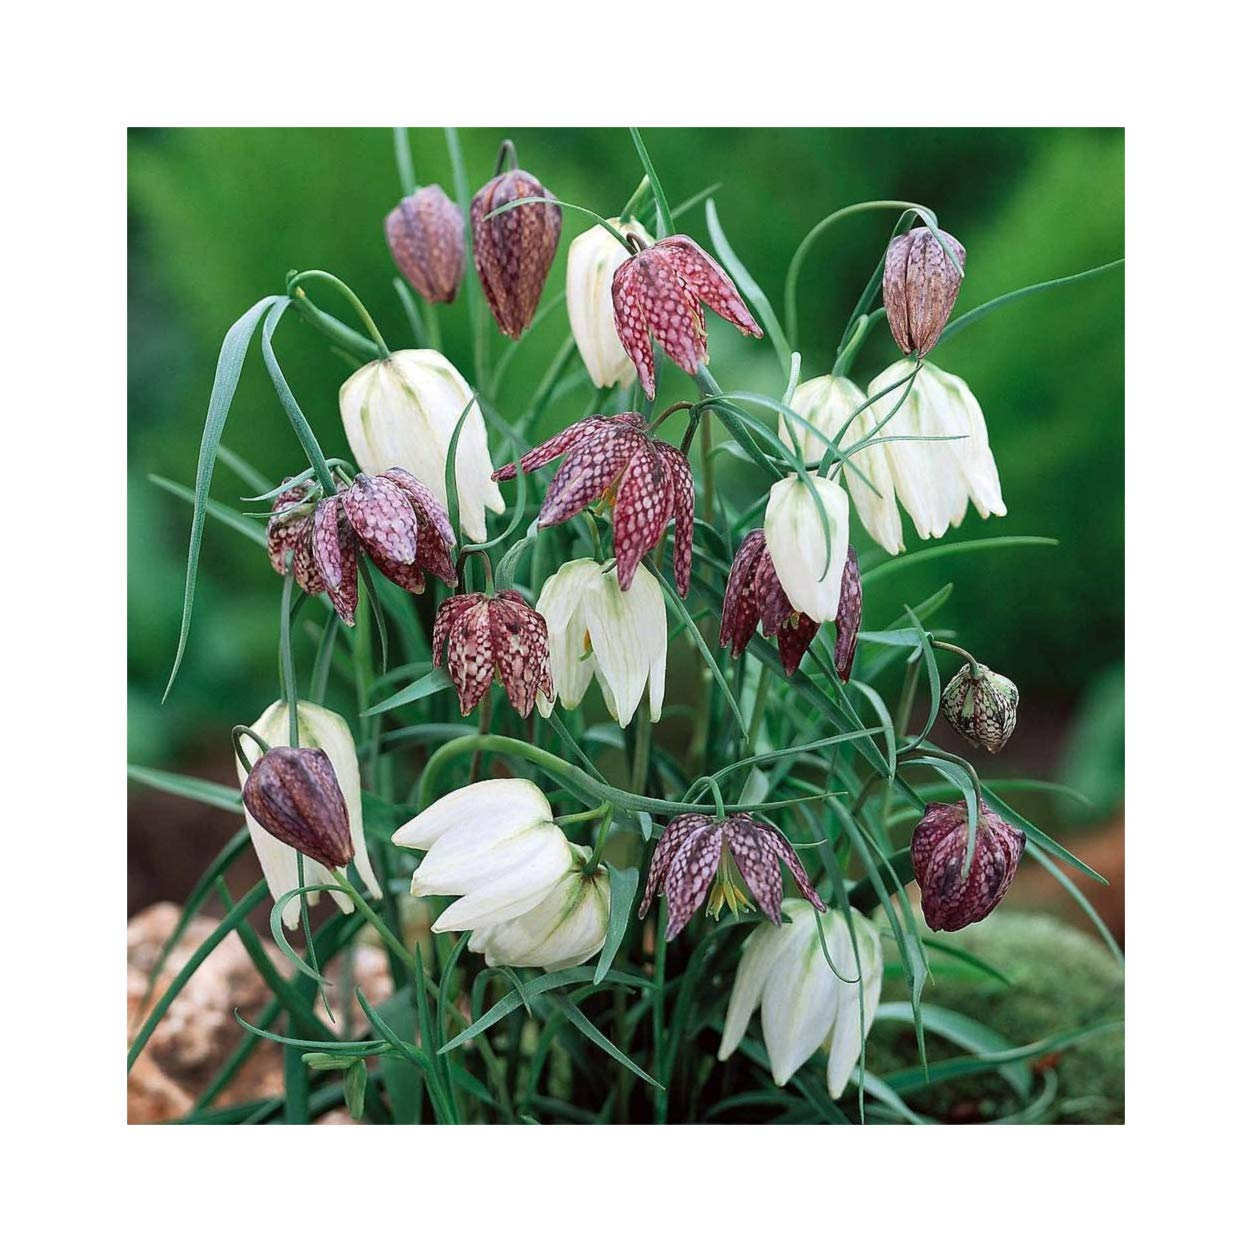 25 x Fritillaria Meleagris Mixed Spring Flowering Bulbs, TOP Size by Leegillard Plug Plants Express Limited